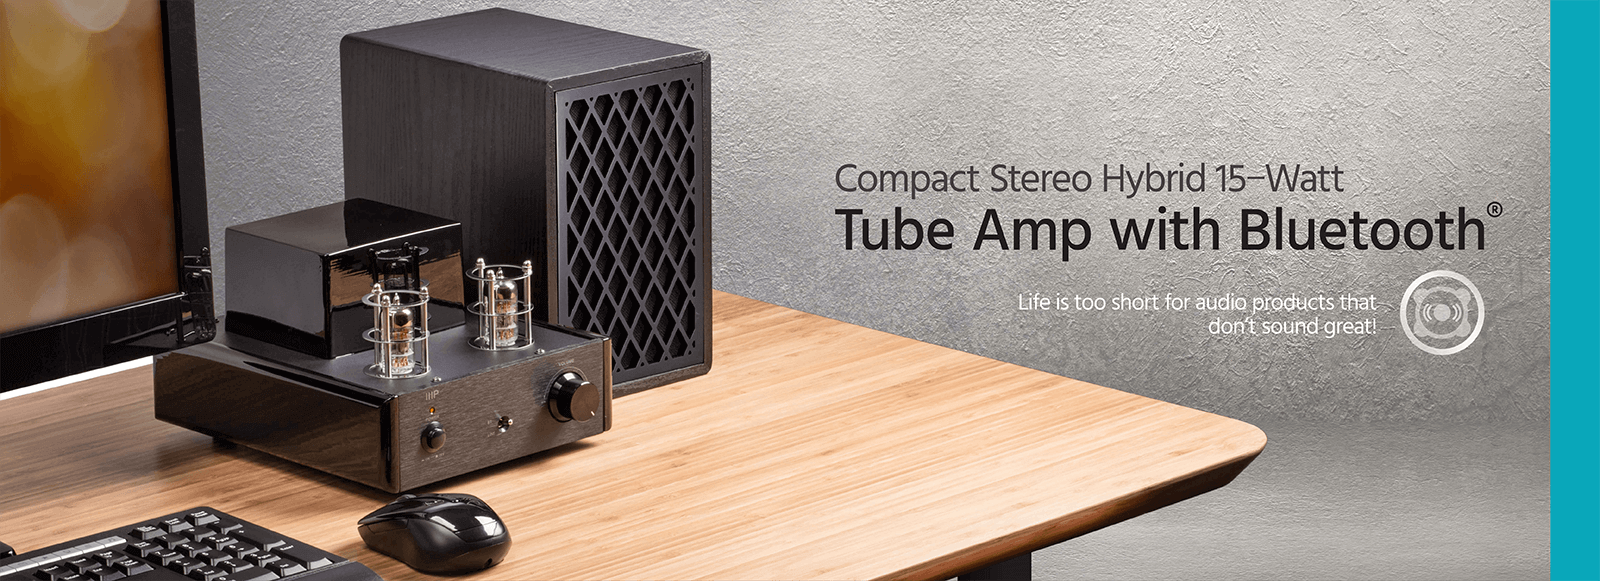 Compact Stereo Hybrid 15−Watt Tube Amp with Bluetooth